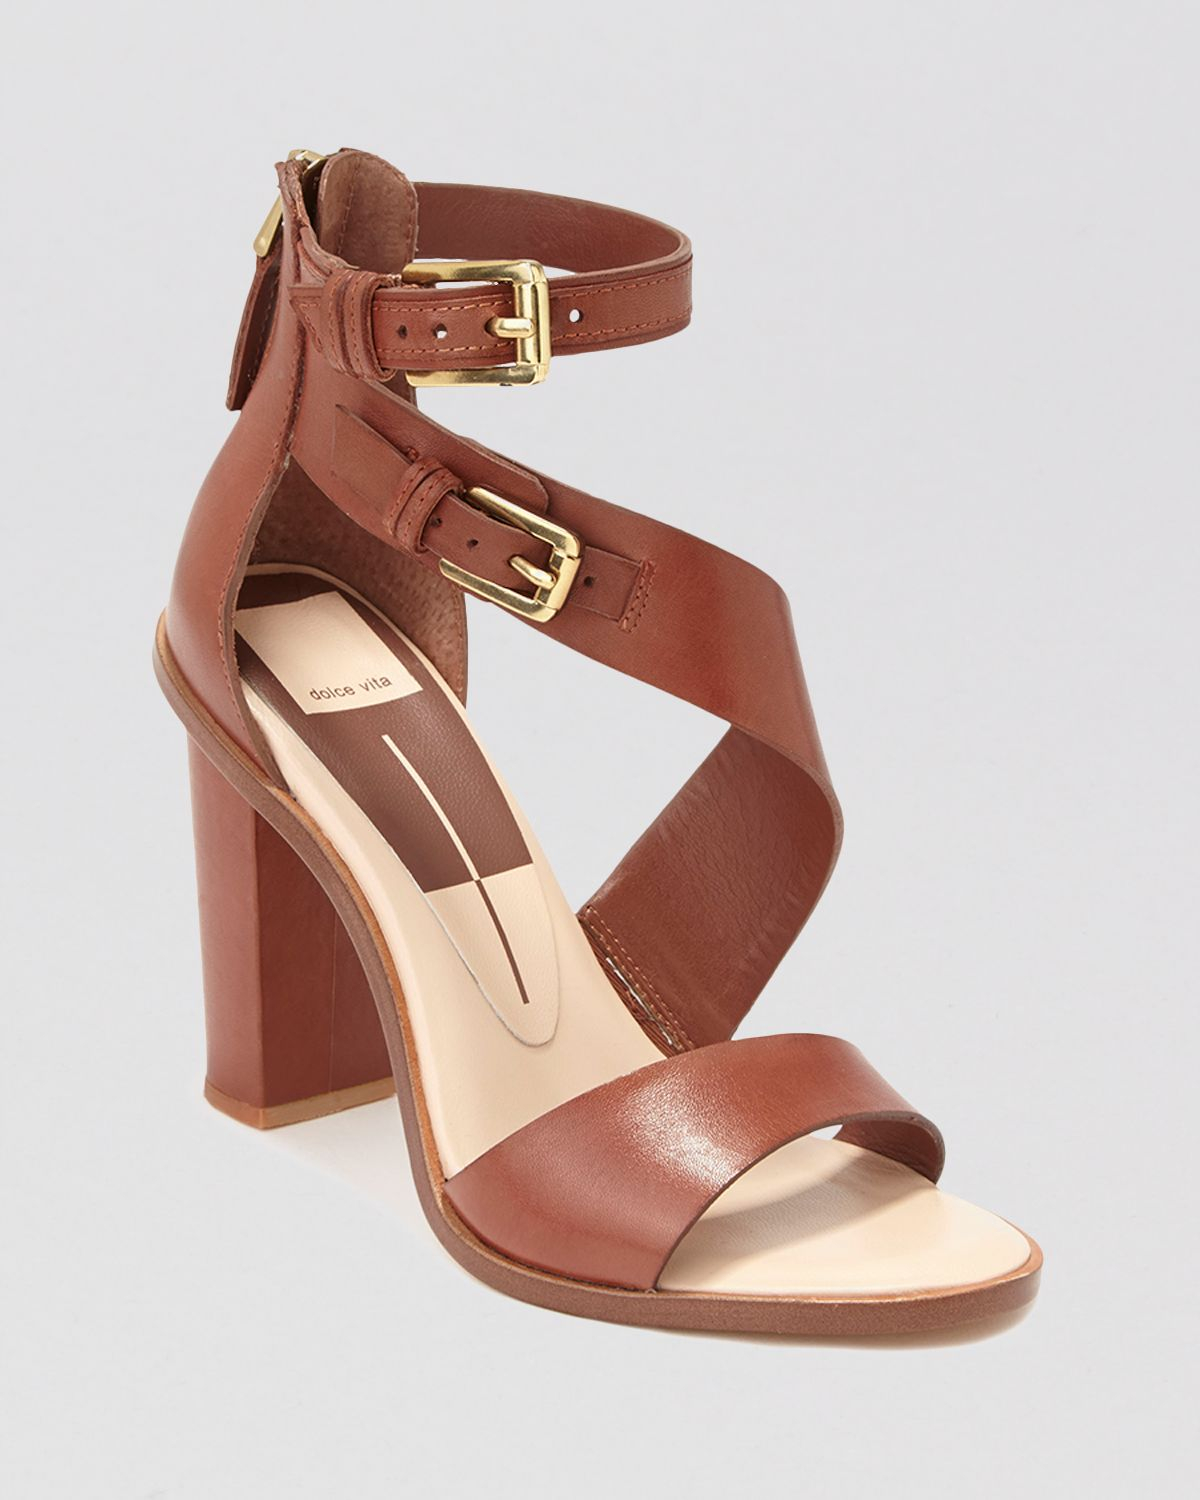 FREE SHIPPING AVAILABLE! Shop specialisedsteels.tk and save on Brown Women's Pumps & Heels.